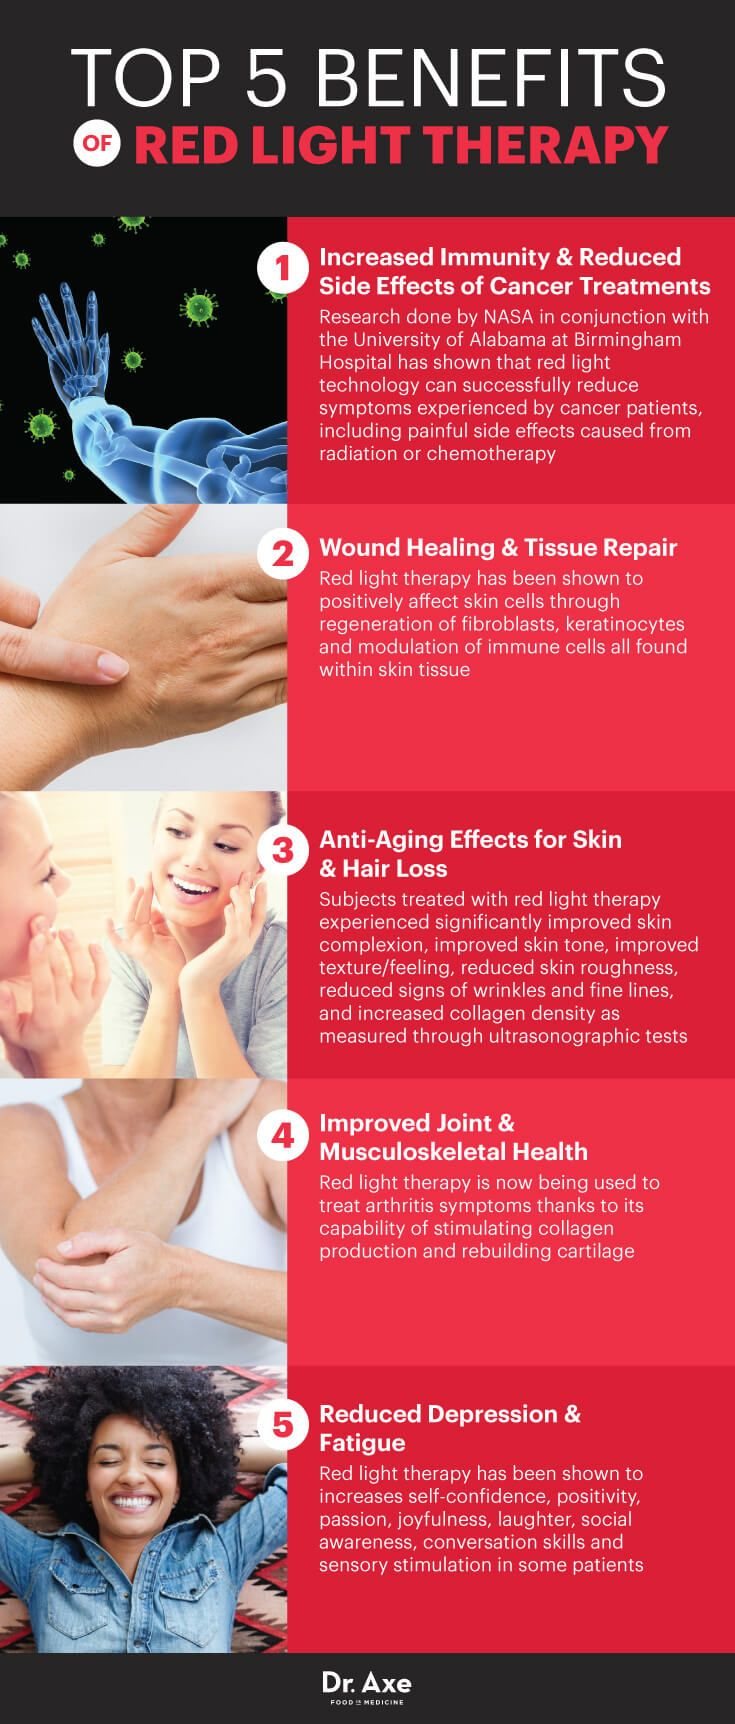 Red Light Therapy Benefits, Research U0026 Mechanism Of Action   Dr. Axe